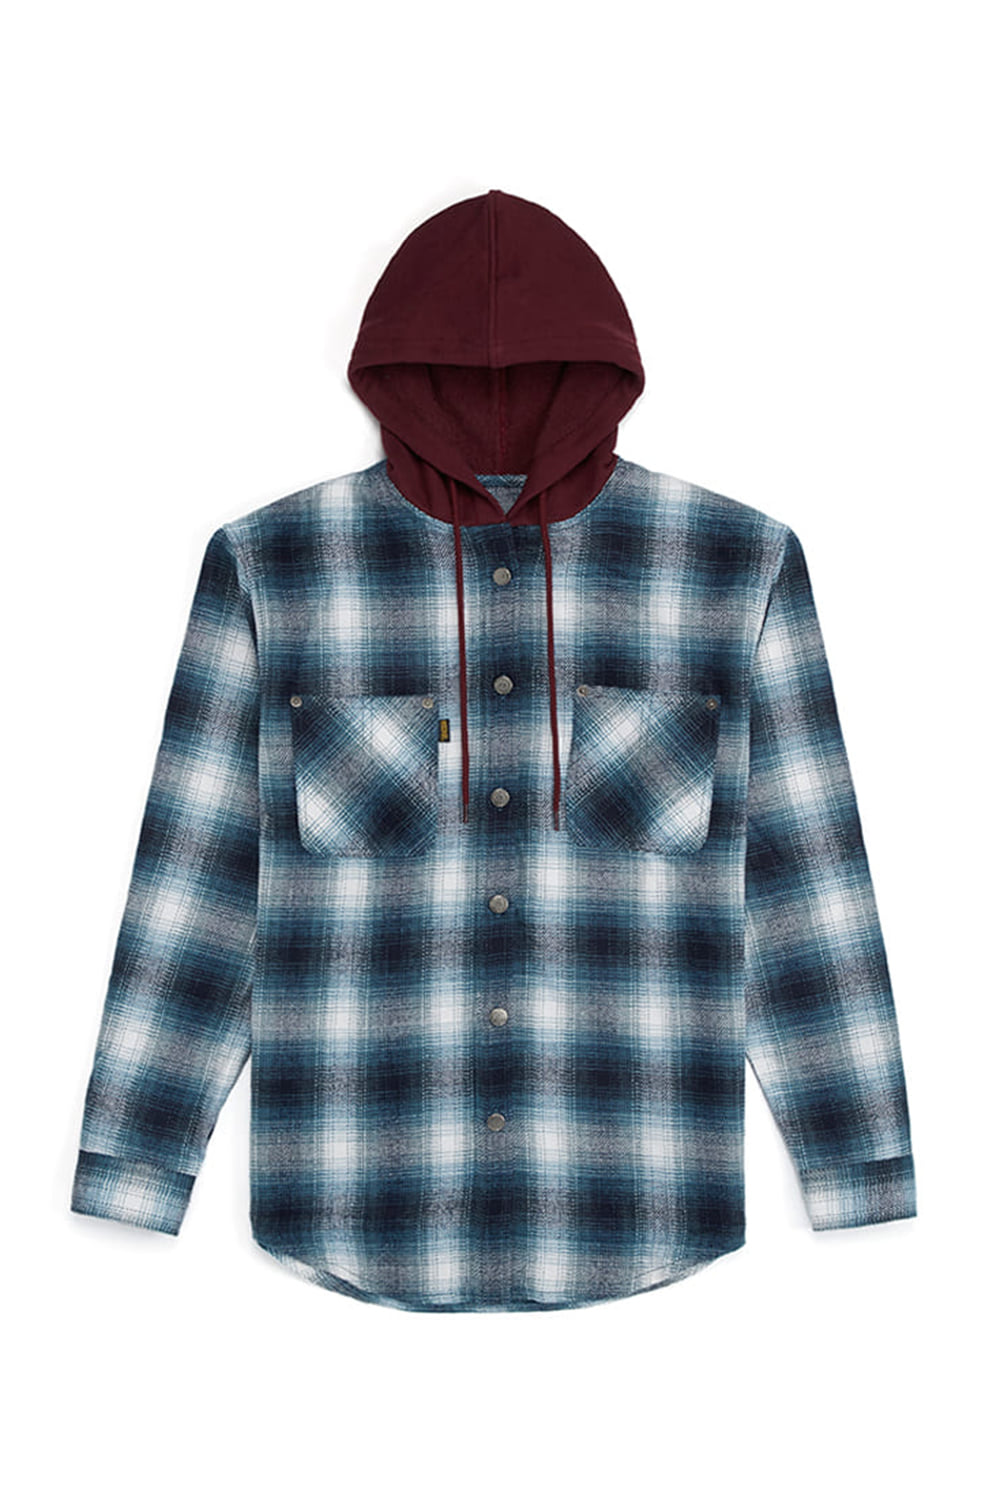 HOODIE CHECK SHIRTS_burgundy/blue